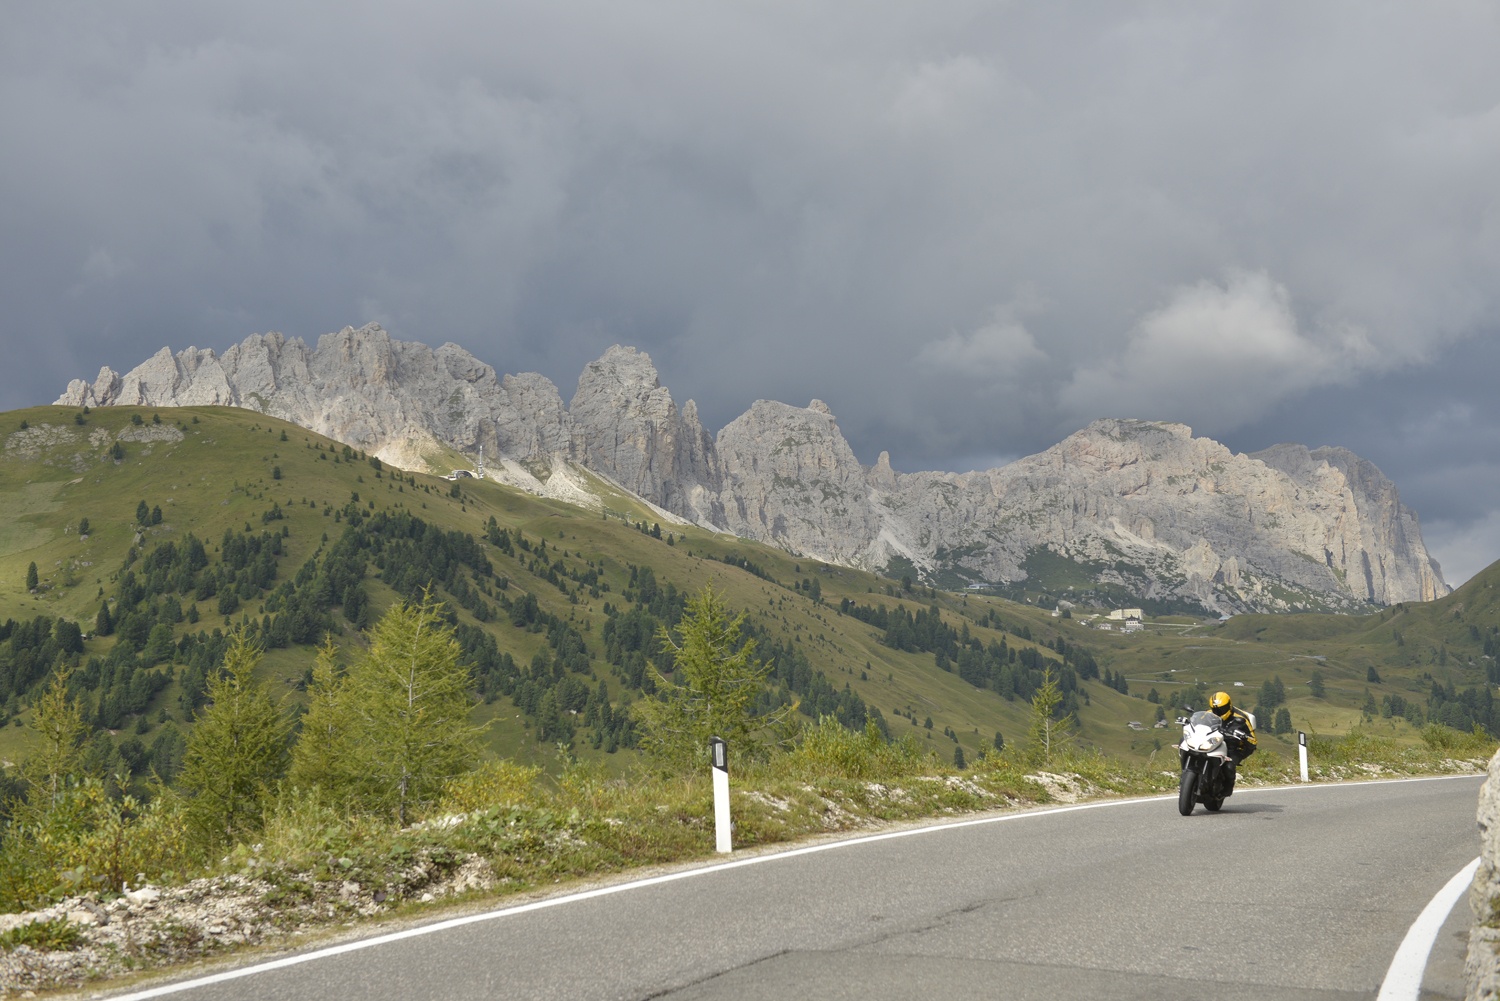 The Dolomites: just about the most scenic place to ride a bike. This is Passo Gardena